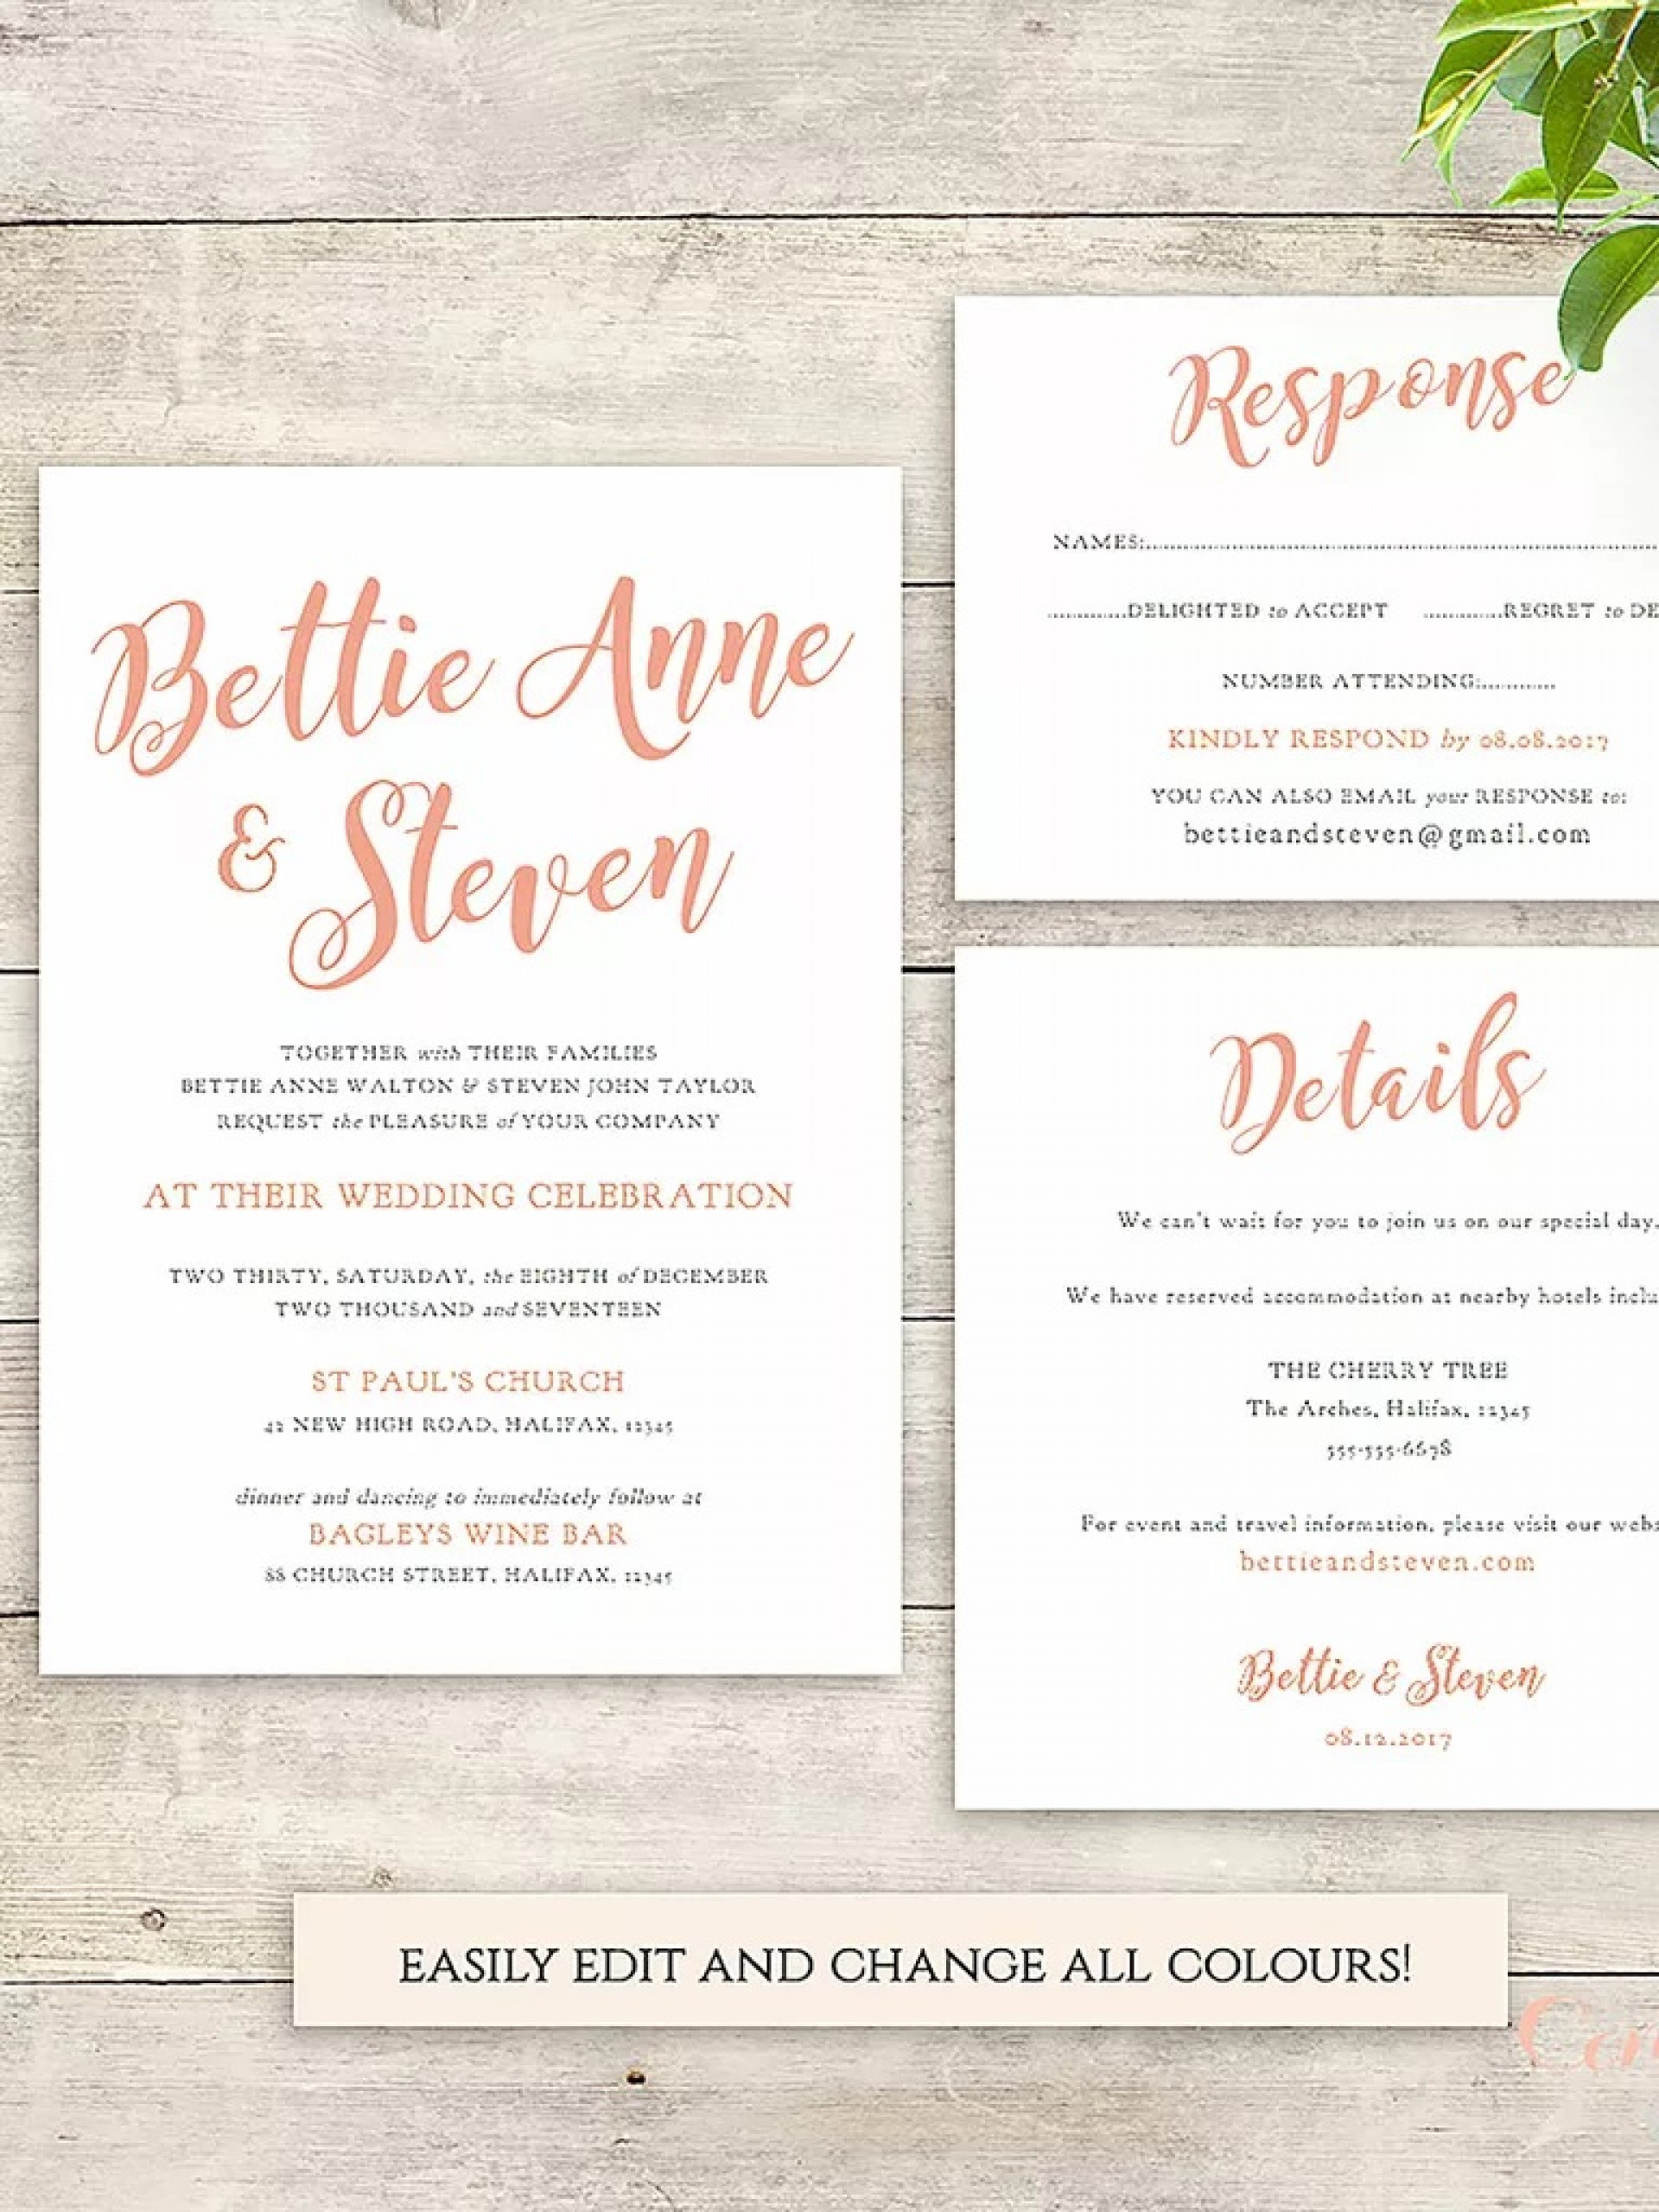 006 Amazing Wedding Invite Wording Template Photo  Templates Chinese Invitation Microsoft Word From Bride And Groom Example Inviting1920